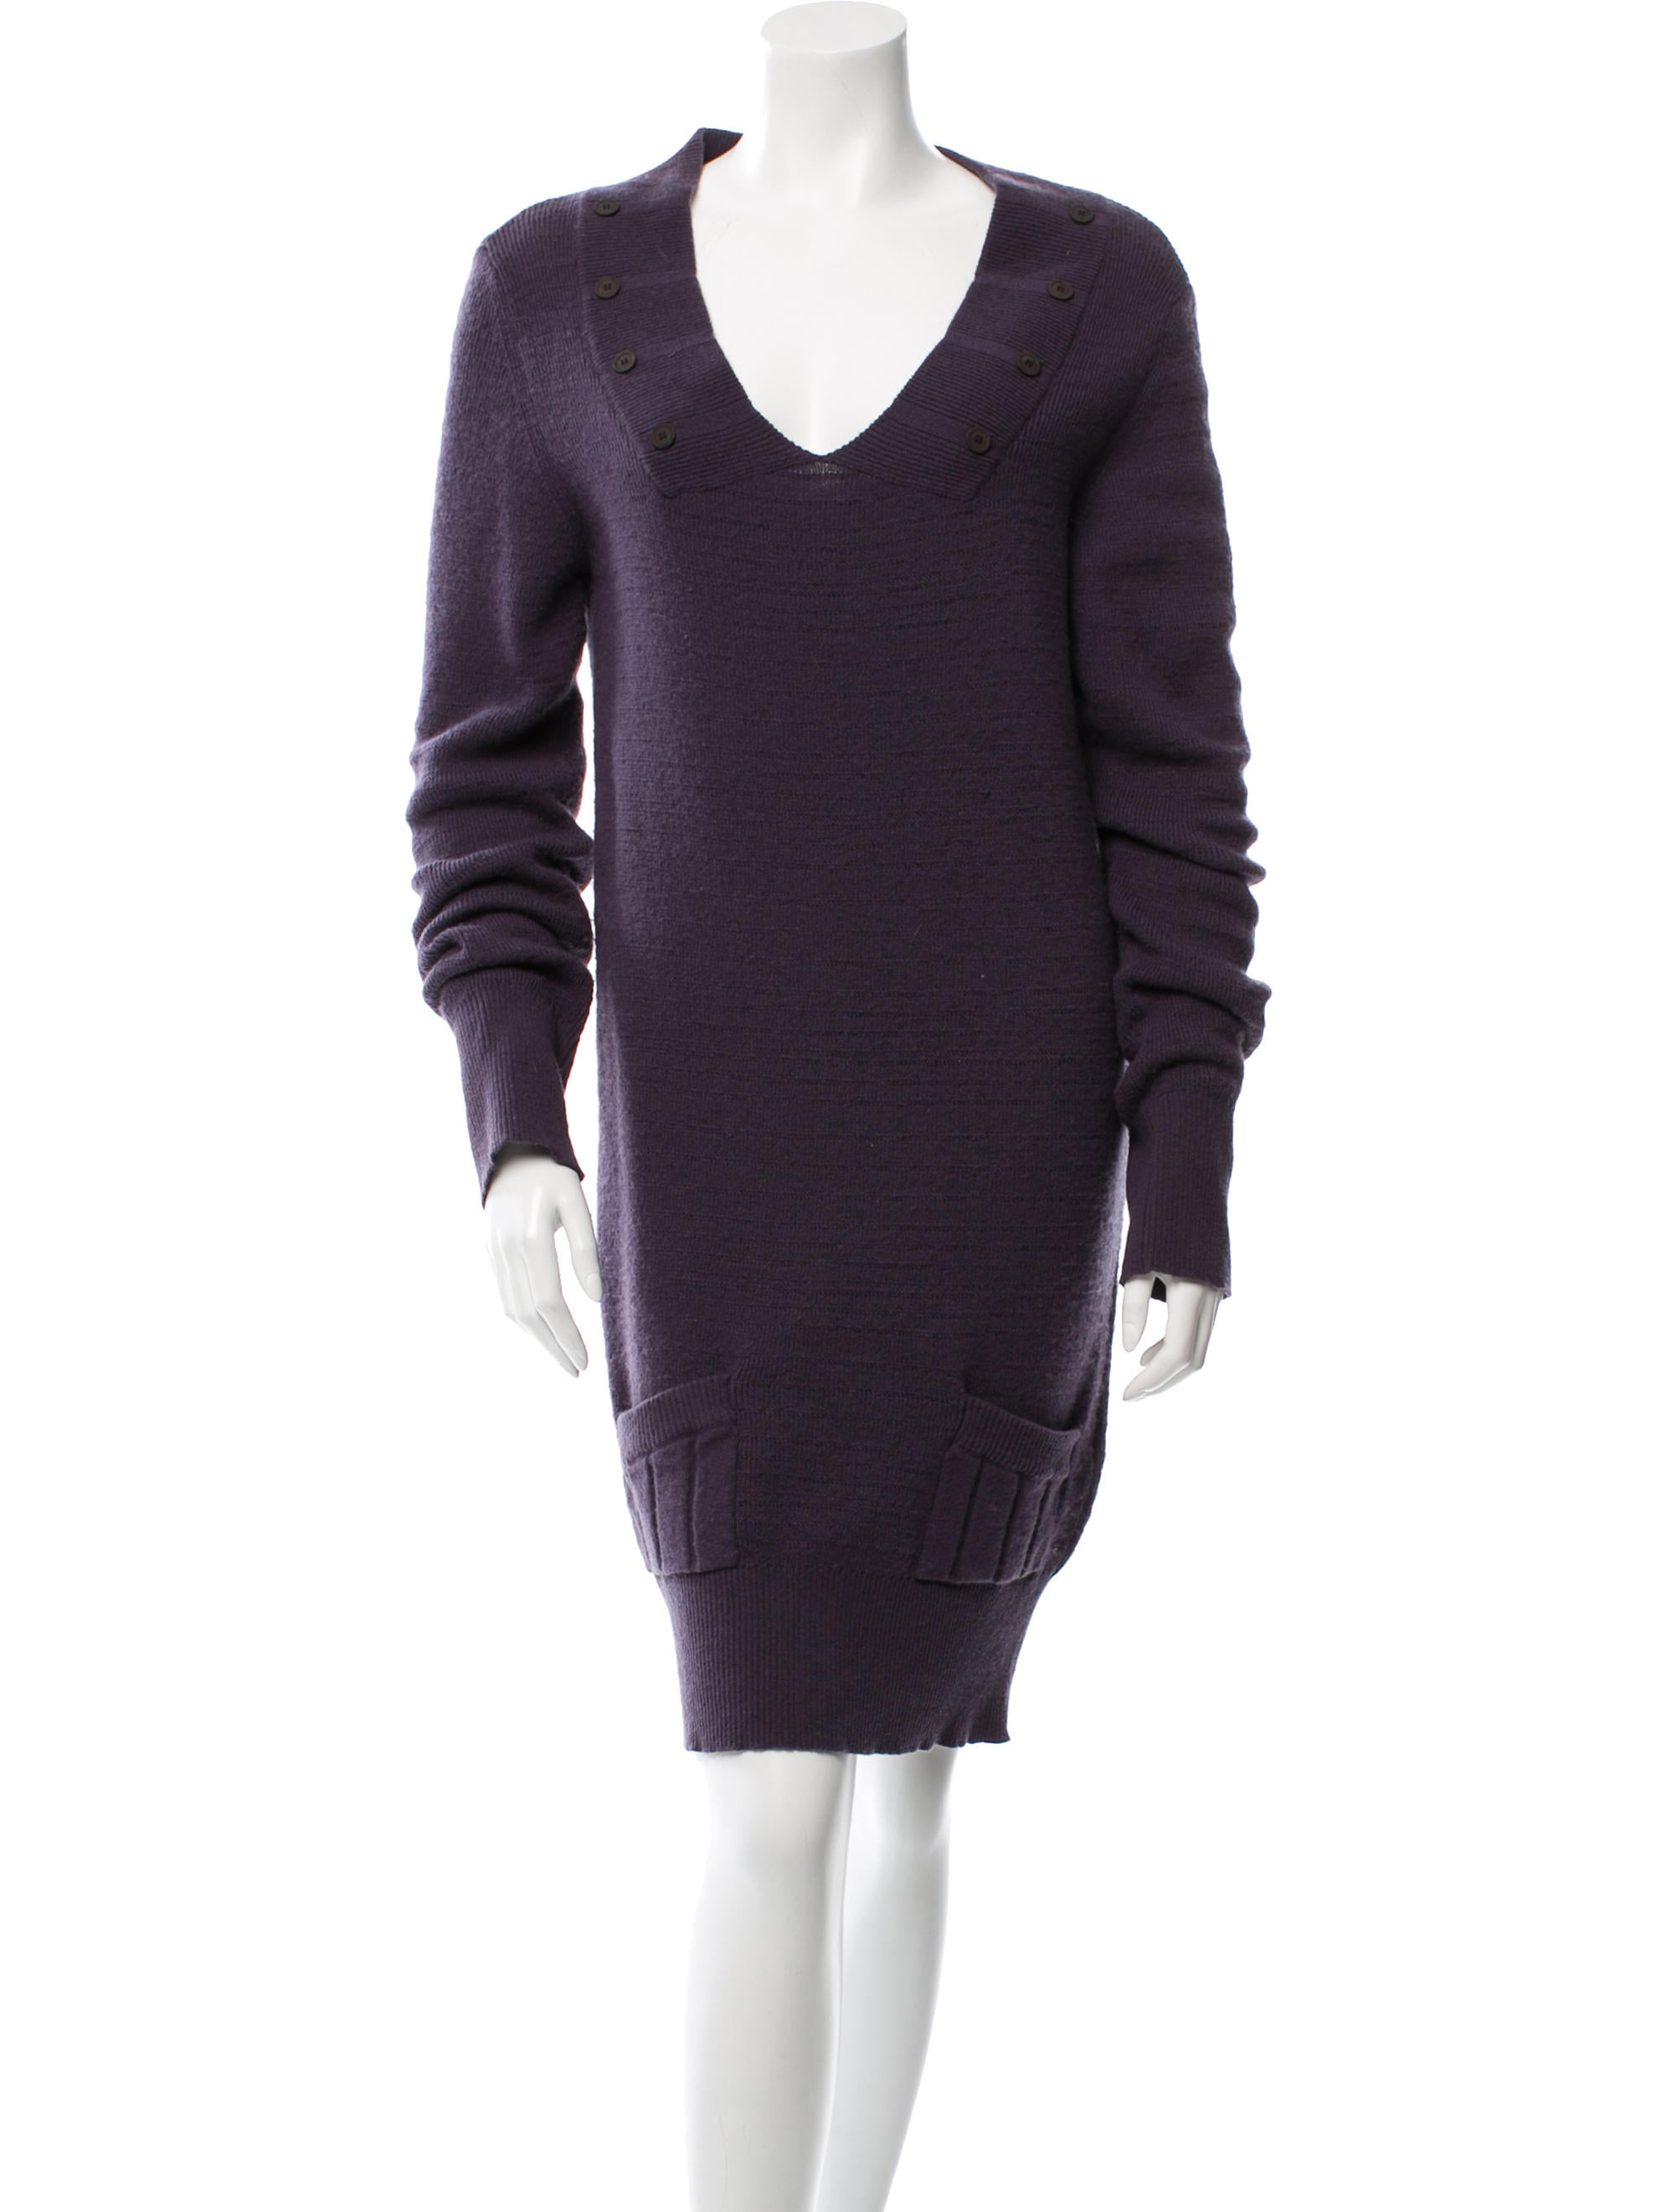 Chlou00e9 Wool Sweater Dress - Clothing - CHL46677 | The RealReal